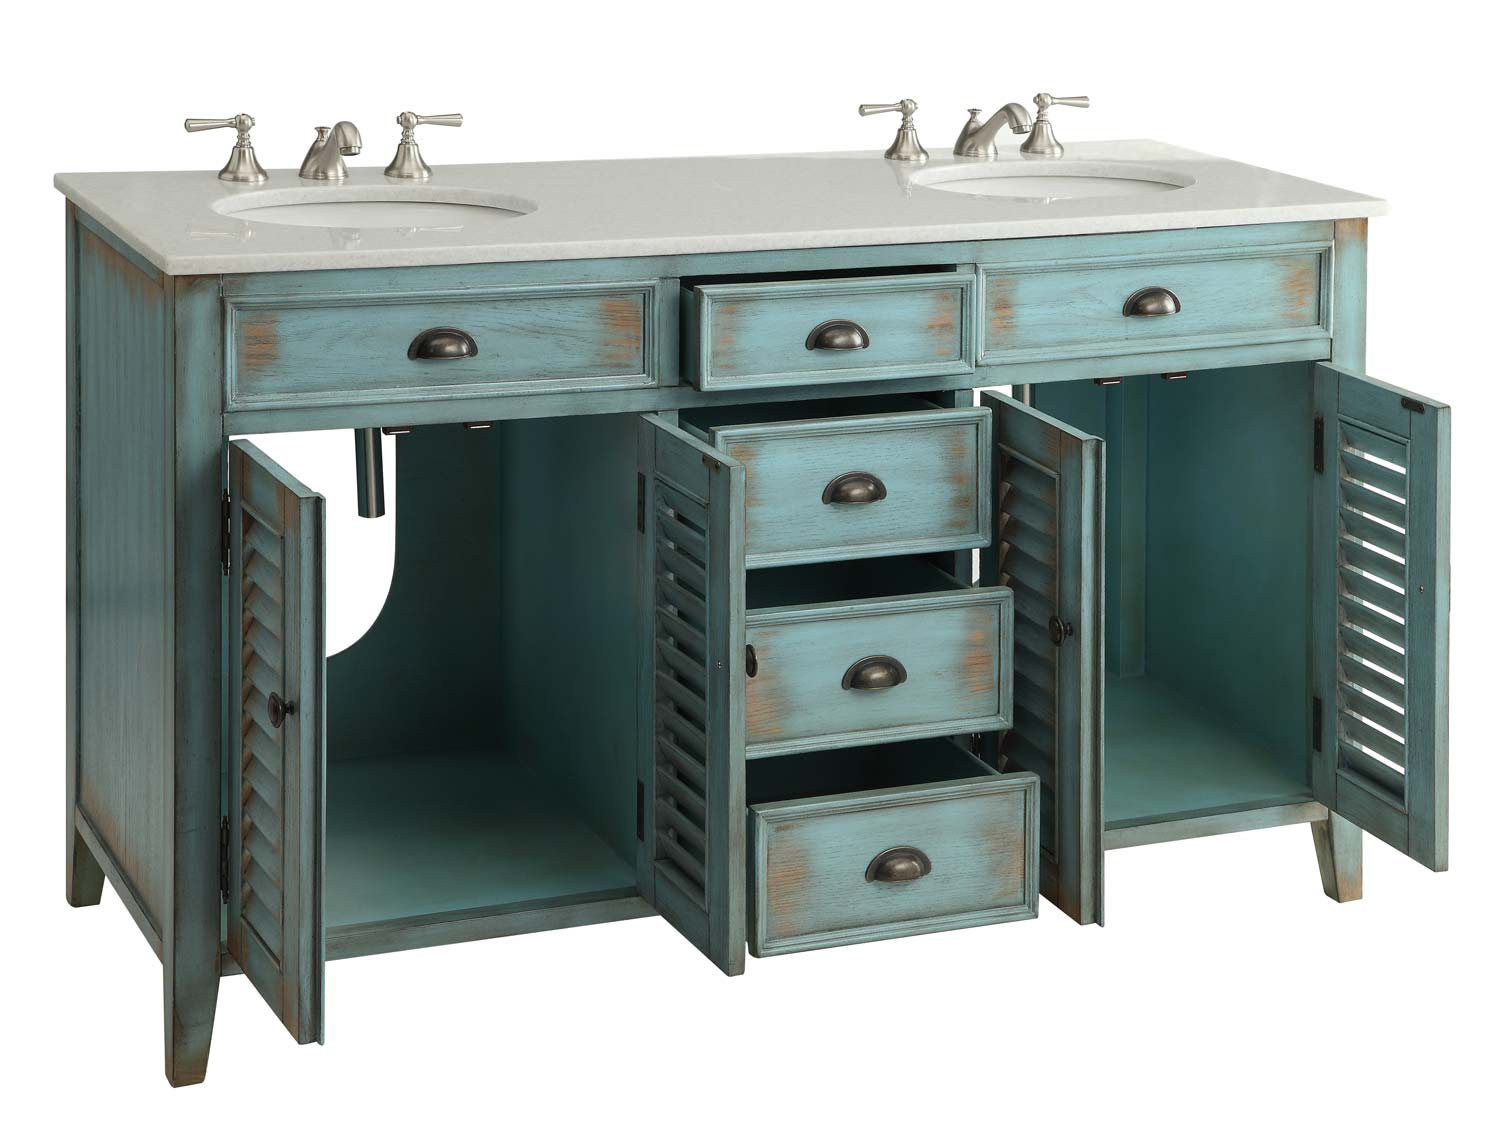 ... Adelina 60 inch Antique Double Bathroom Vanity - Adelina 60 Inch Antique Double Sink Bathroom Vanity, Marble